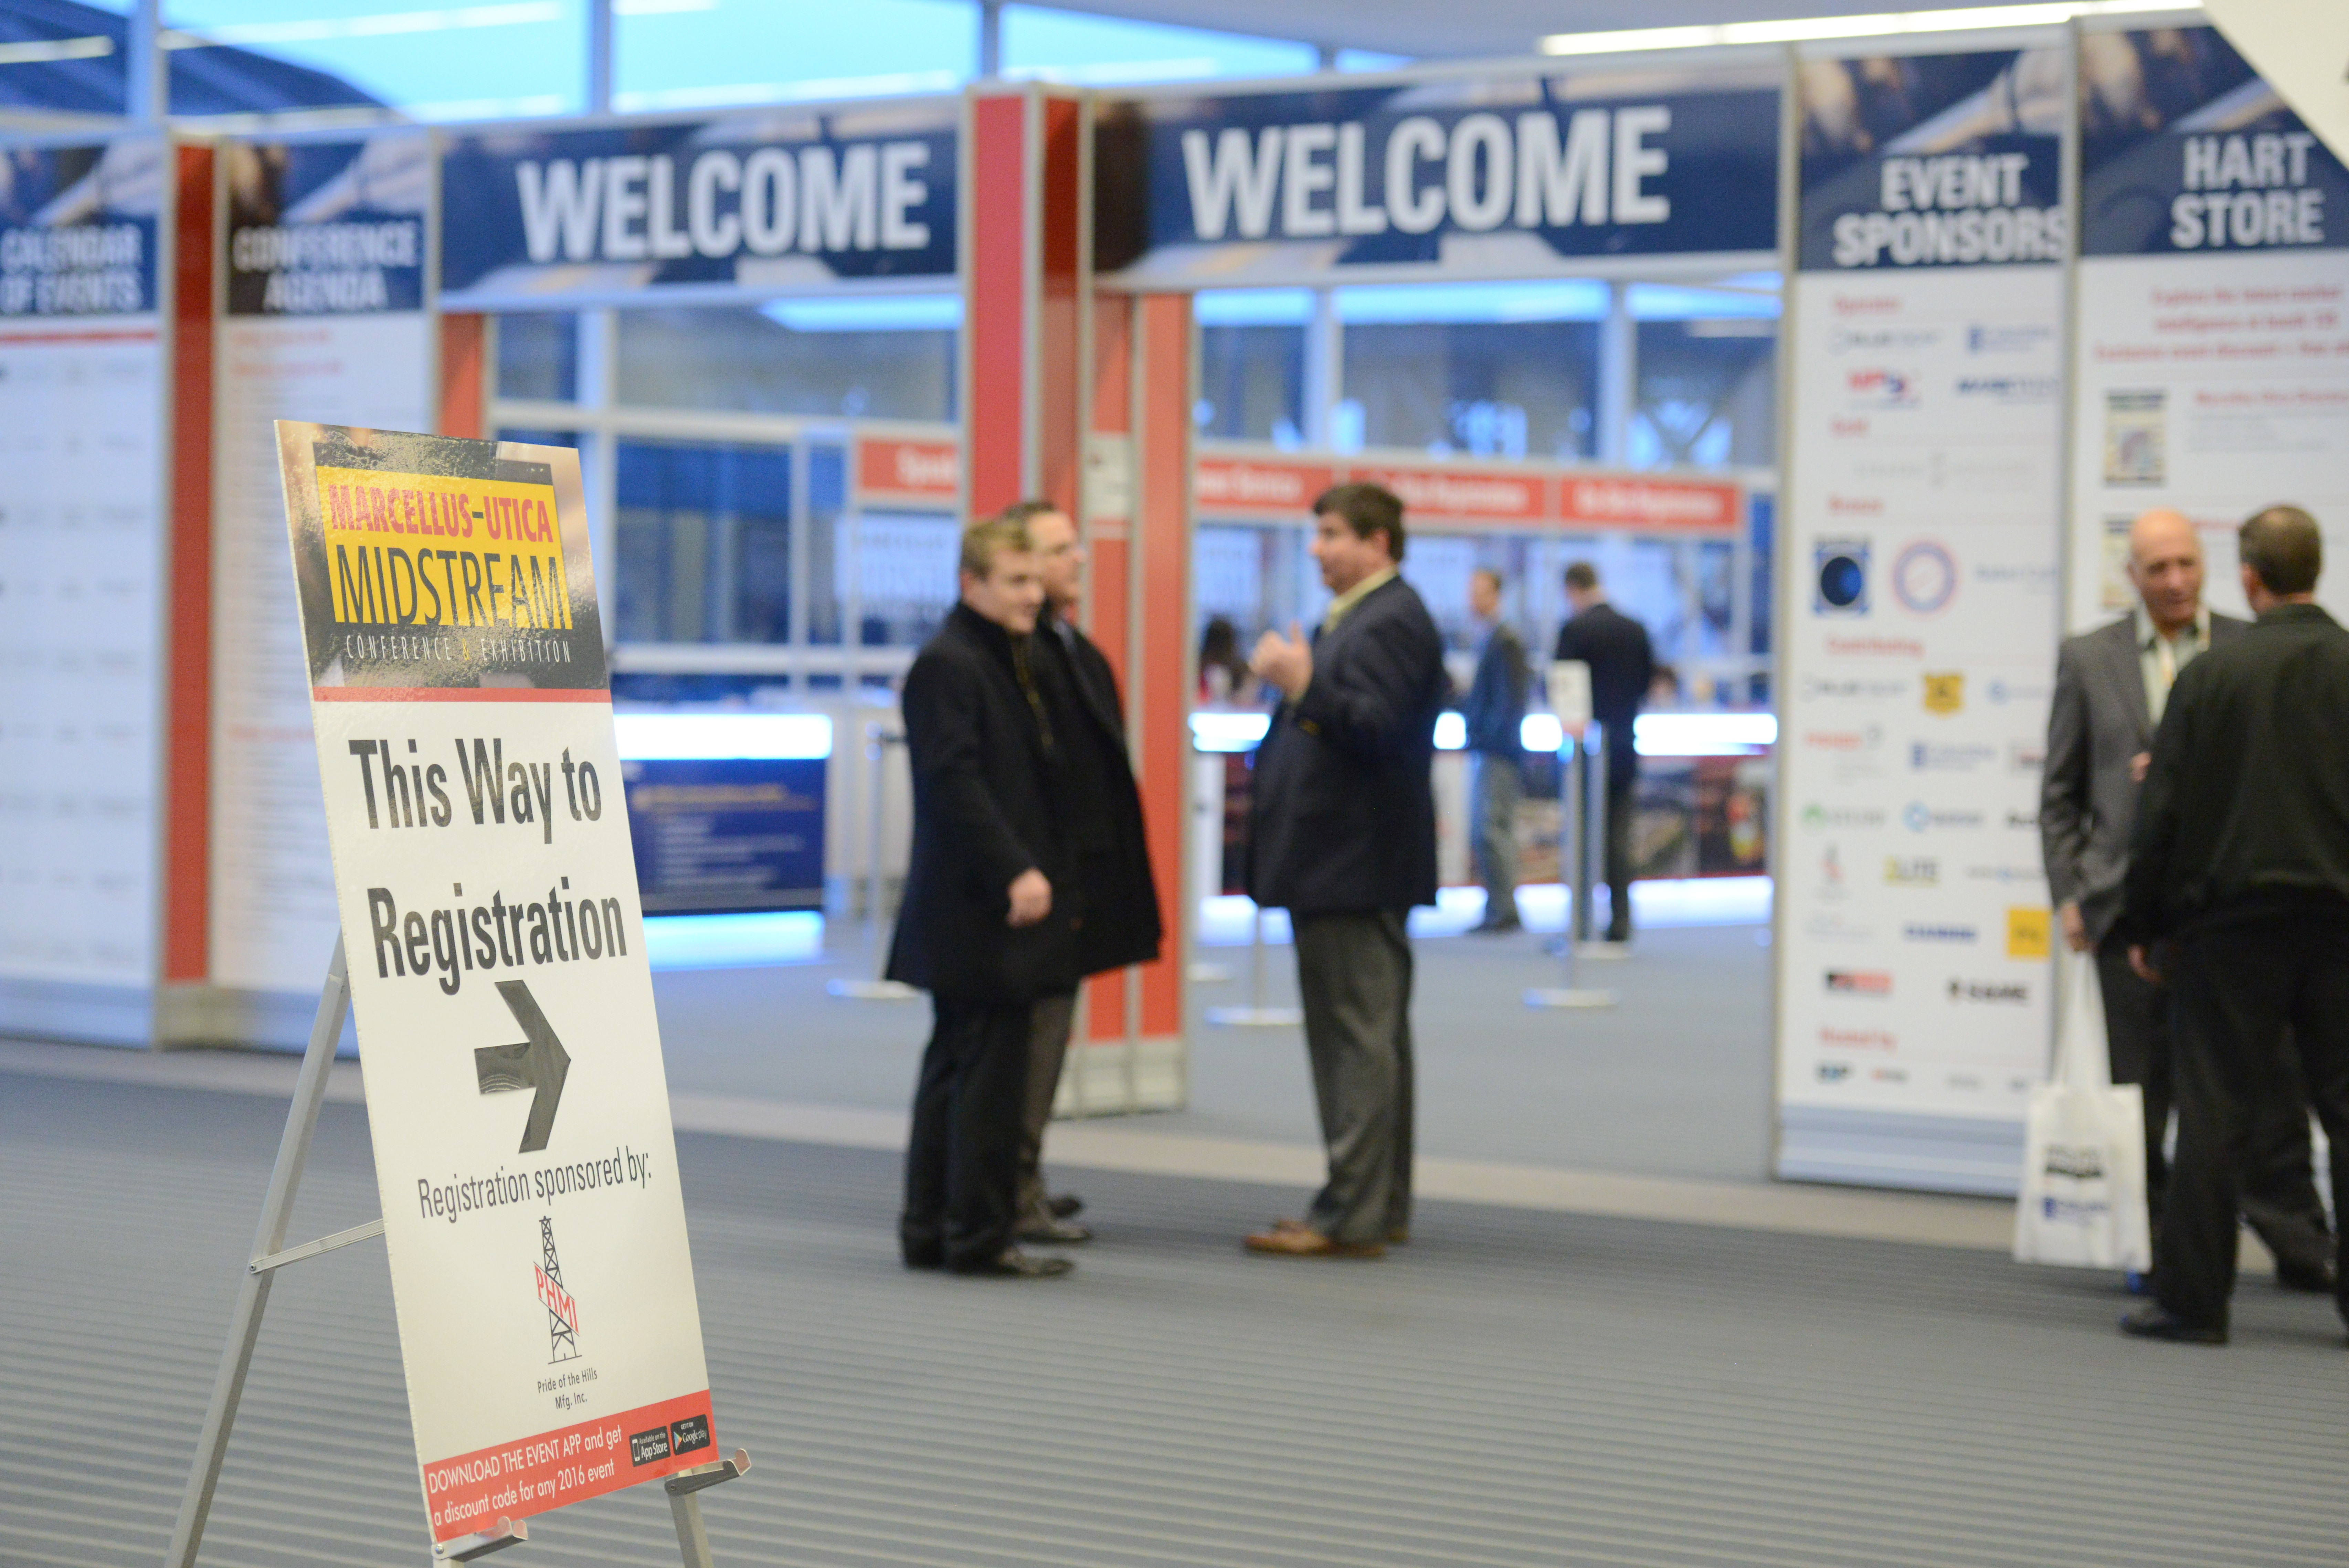 Marcellus-Utica MIDSTREAM conference and exhibition